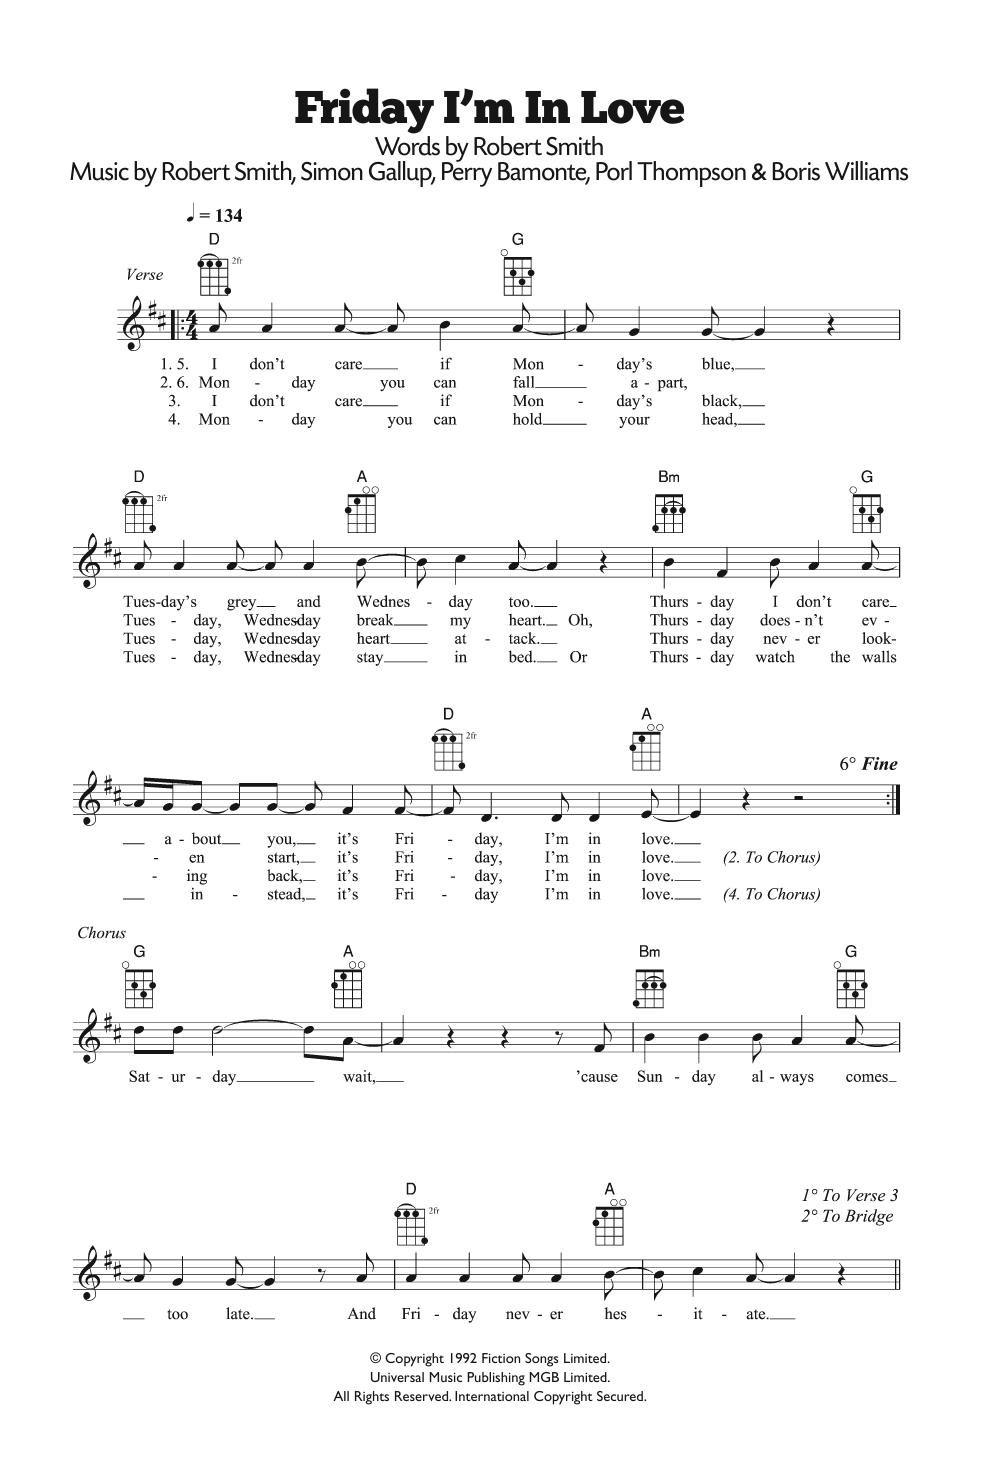 Friday I'm In Love Sheet Music